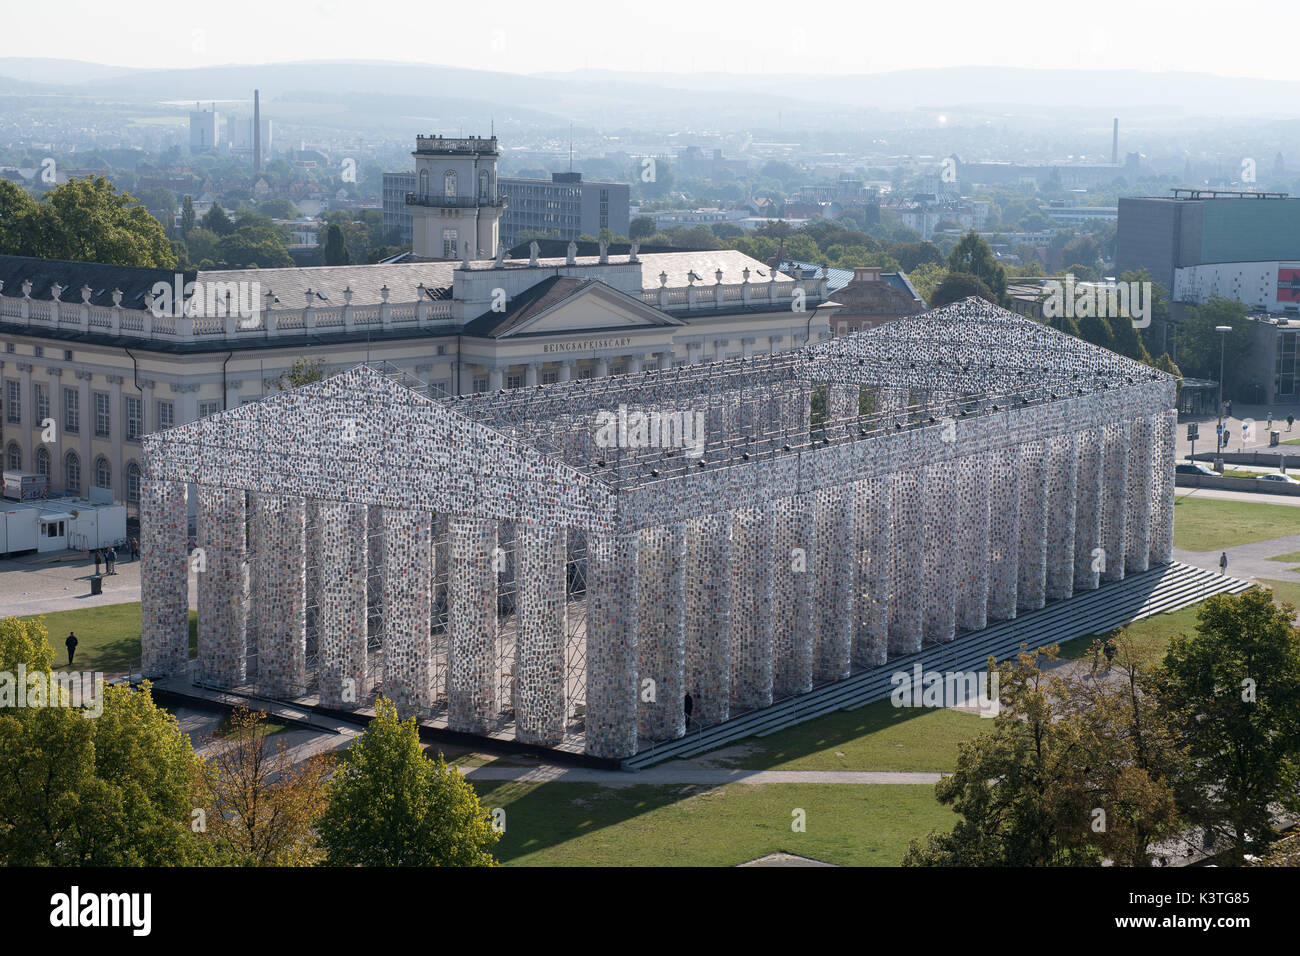 View of the finalized documenta artwork 'The Parthenon of Books' in Kassel, Germany, 4 September 2017. The reconstruction of the Parthenon temple by Argentinian artist Marta Minujin is one of the biggest projects of the documenta. The documenta 14 in Kassel continues until 17 September 2017. Photo: Swen Pförtner/dpa - Stock Image